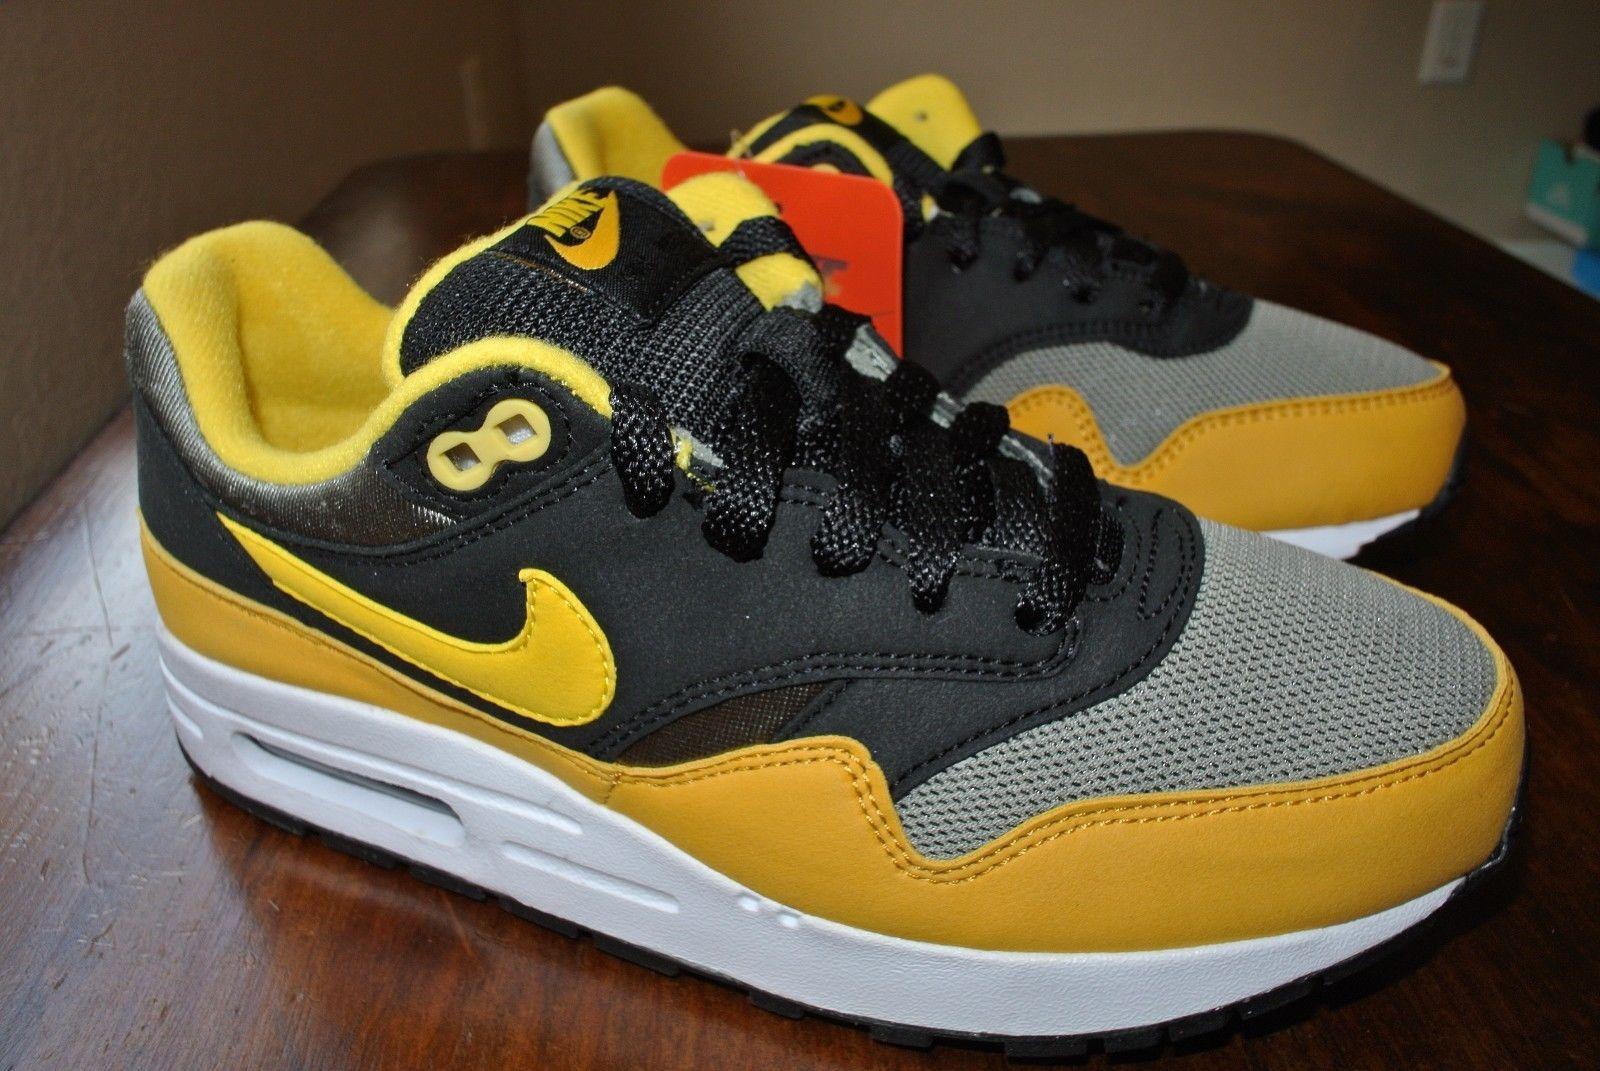 best service 41ca9 b93e7 NIKE AIR MAX 1 (GS) YOUTH BLACK YELLOW GREY 807602 007 US YOUTH SIZE